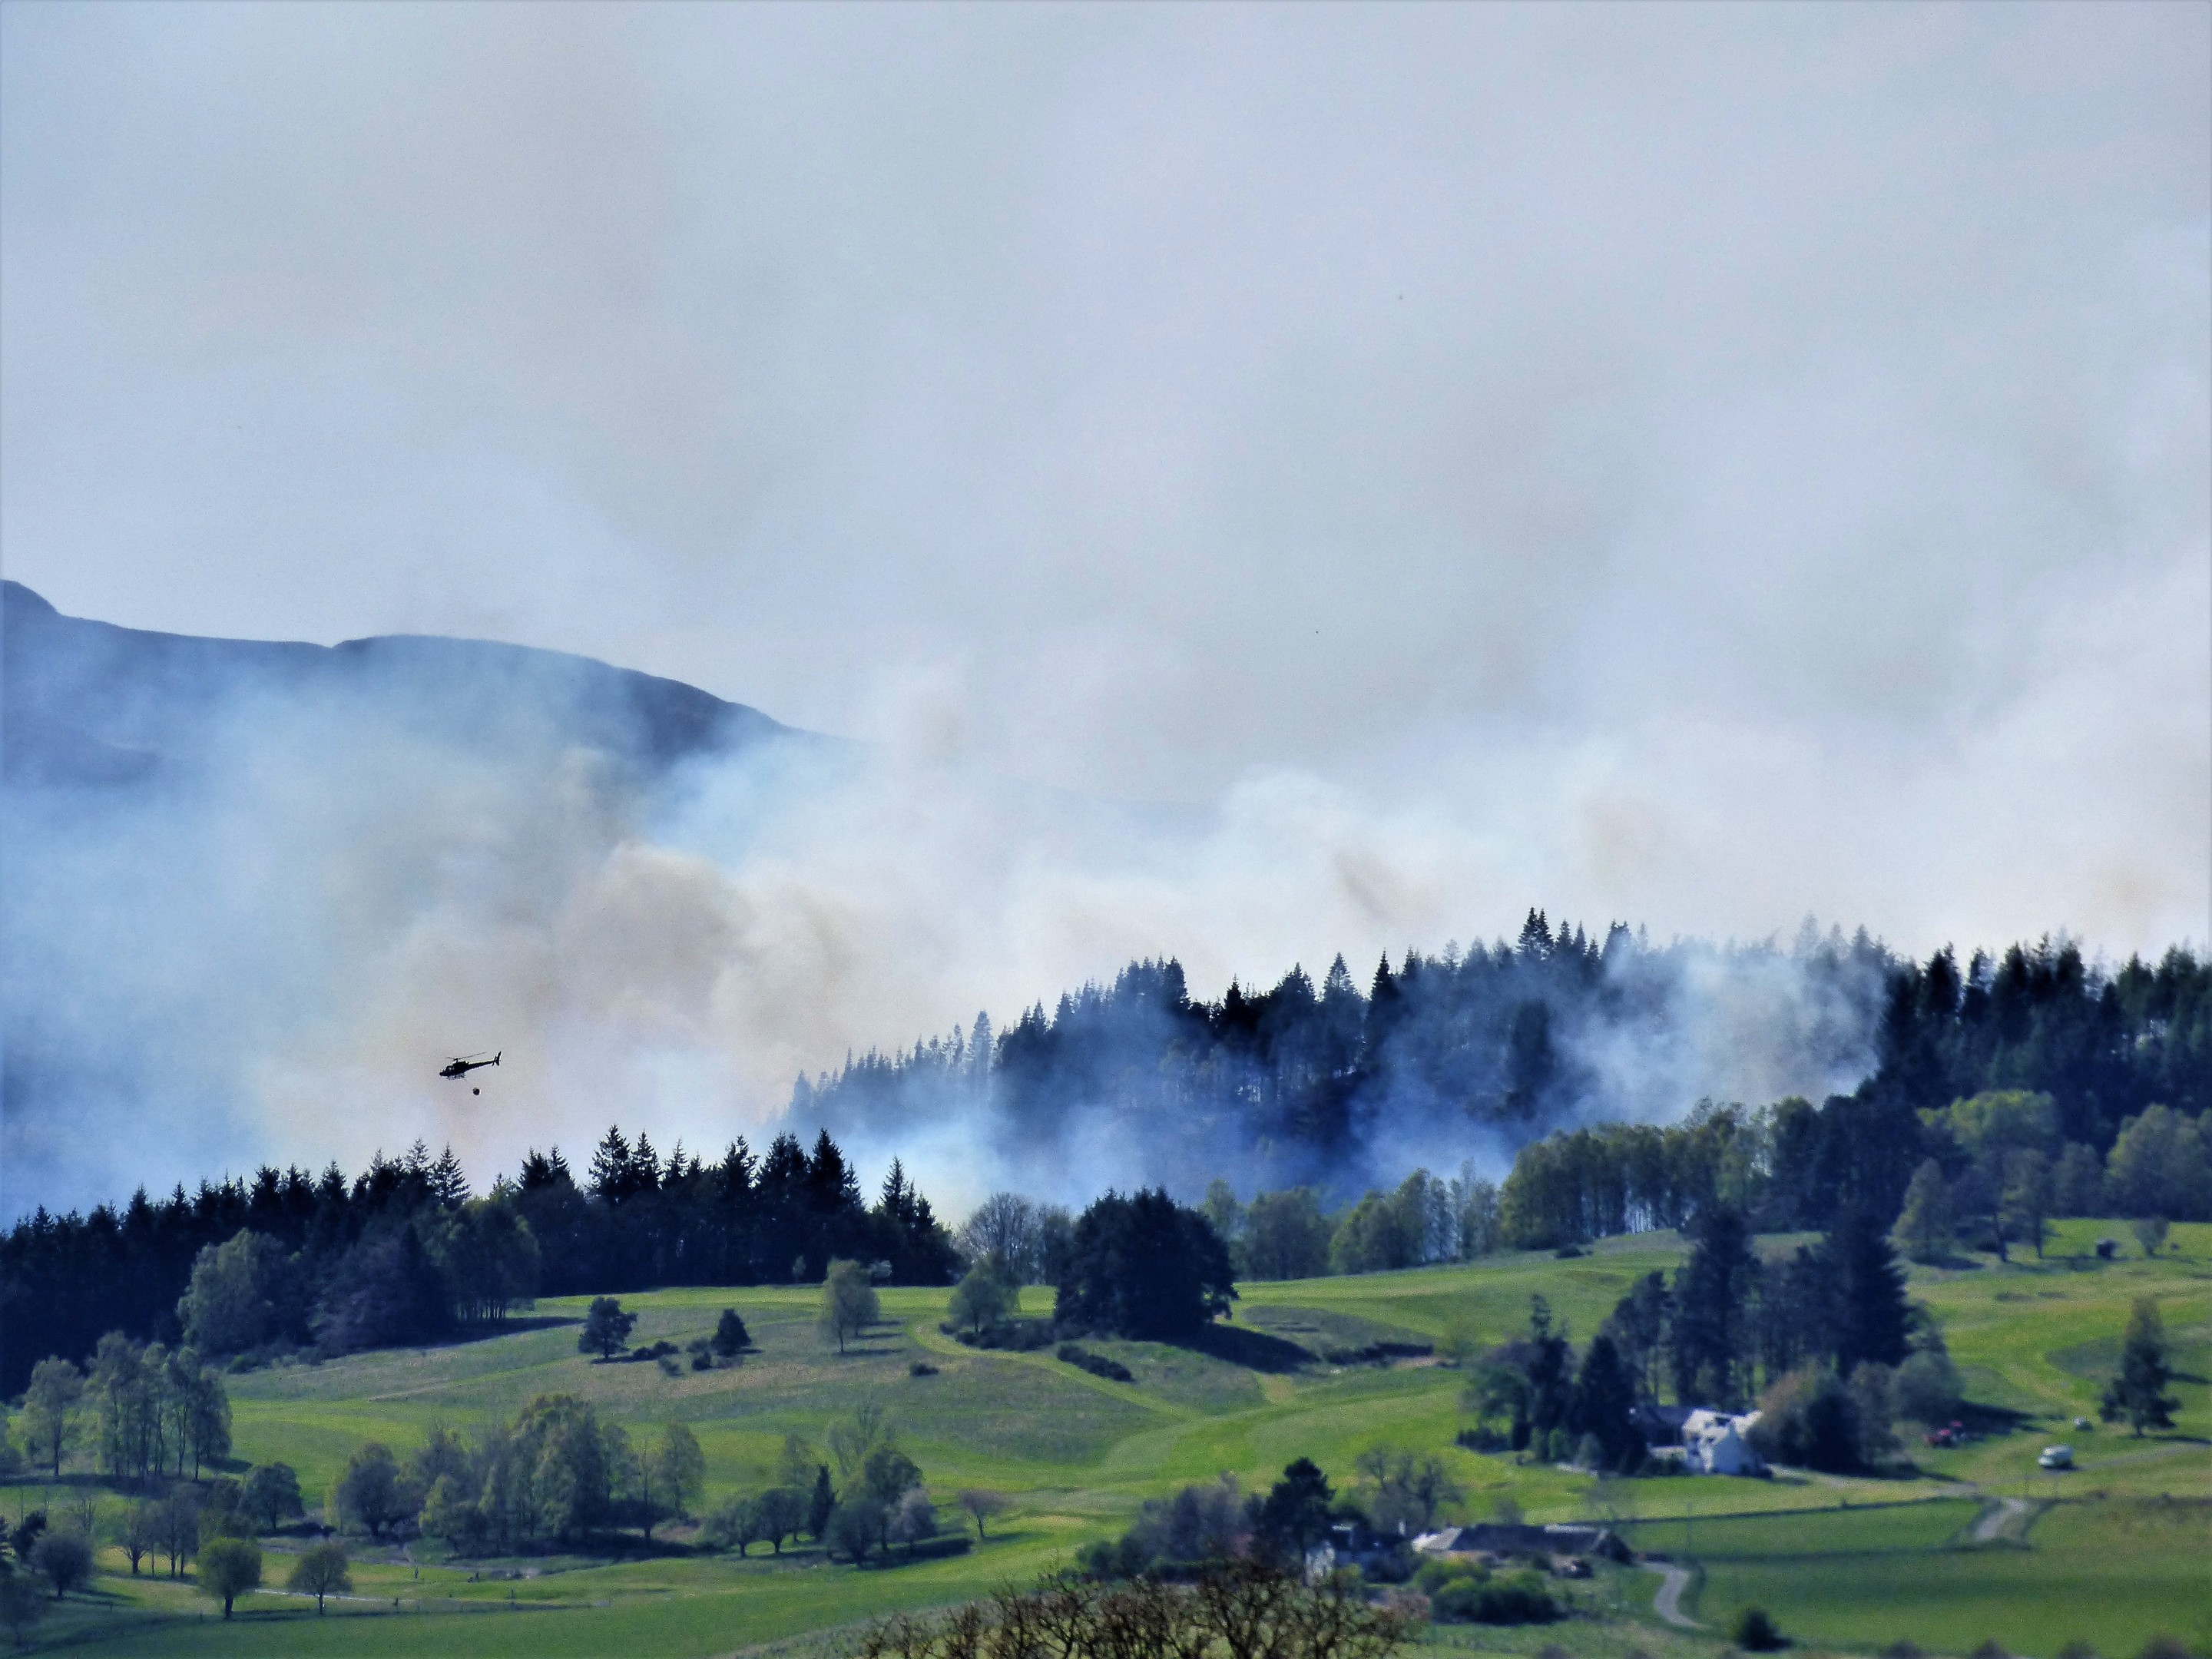 Helicopters battle to dampen the fire. Pictures from Marie and Sandy Reid.